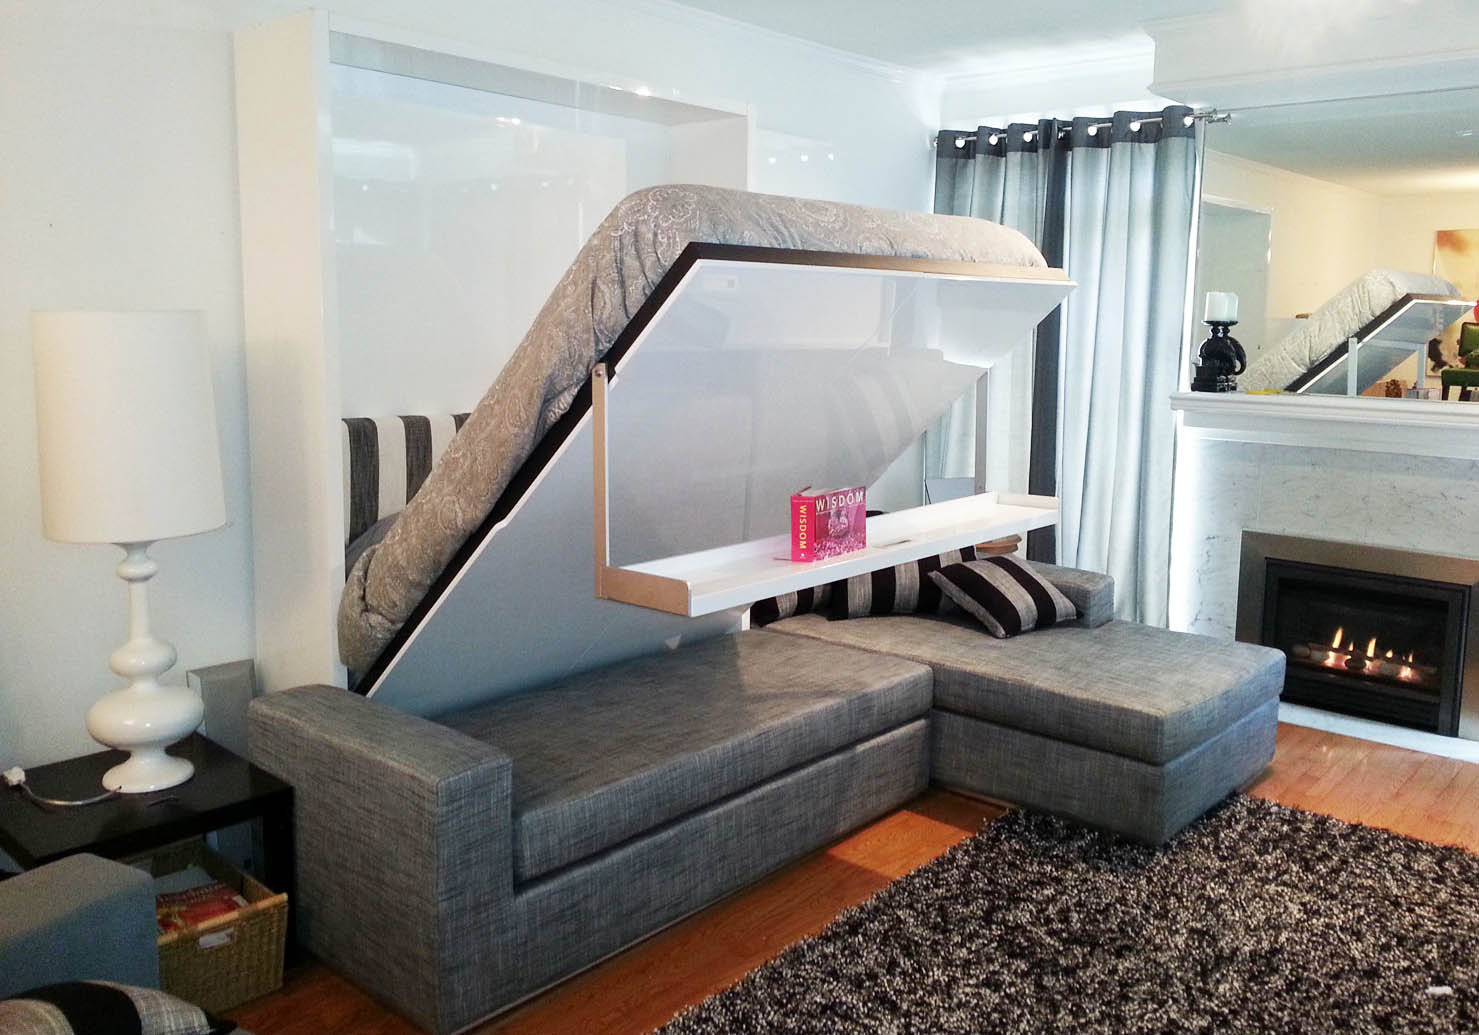 MurphySofa Sectional Wall Bed Float